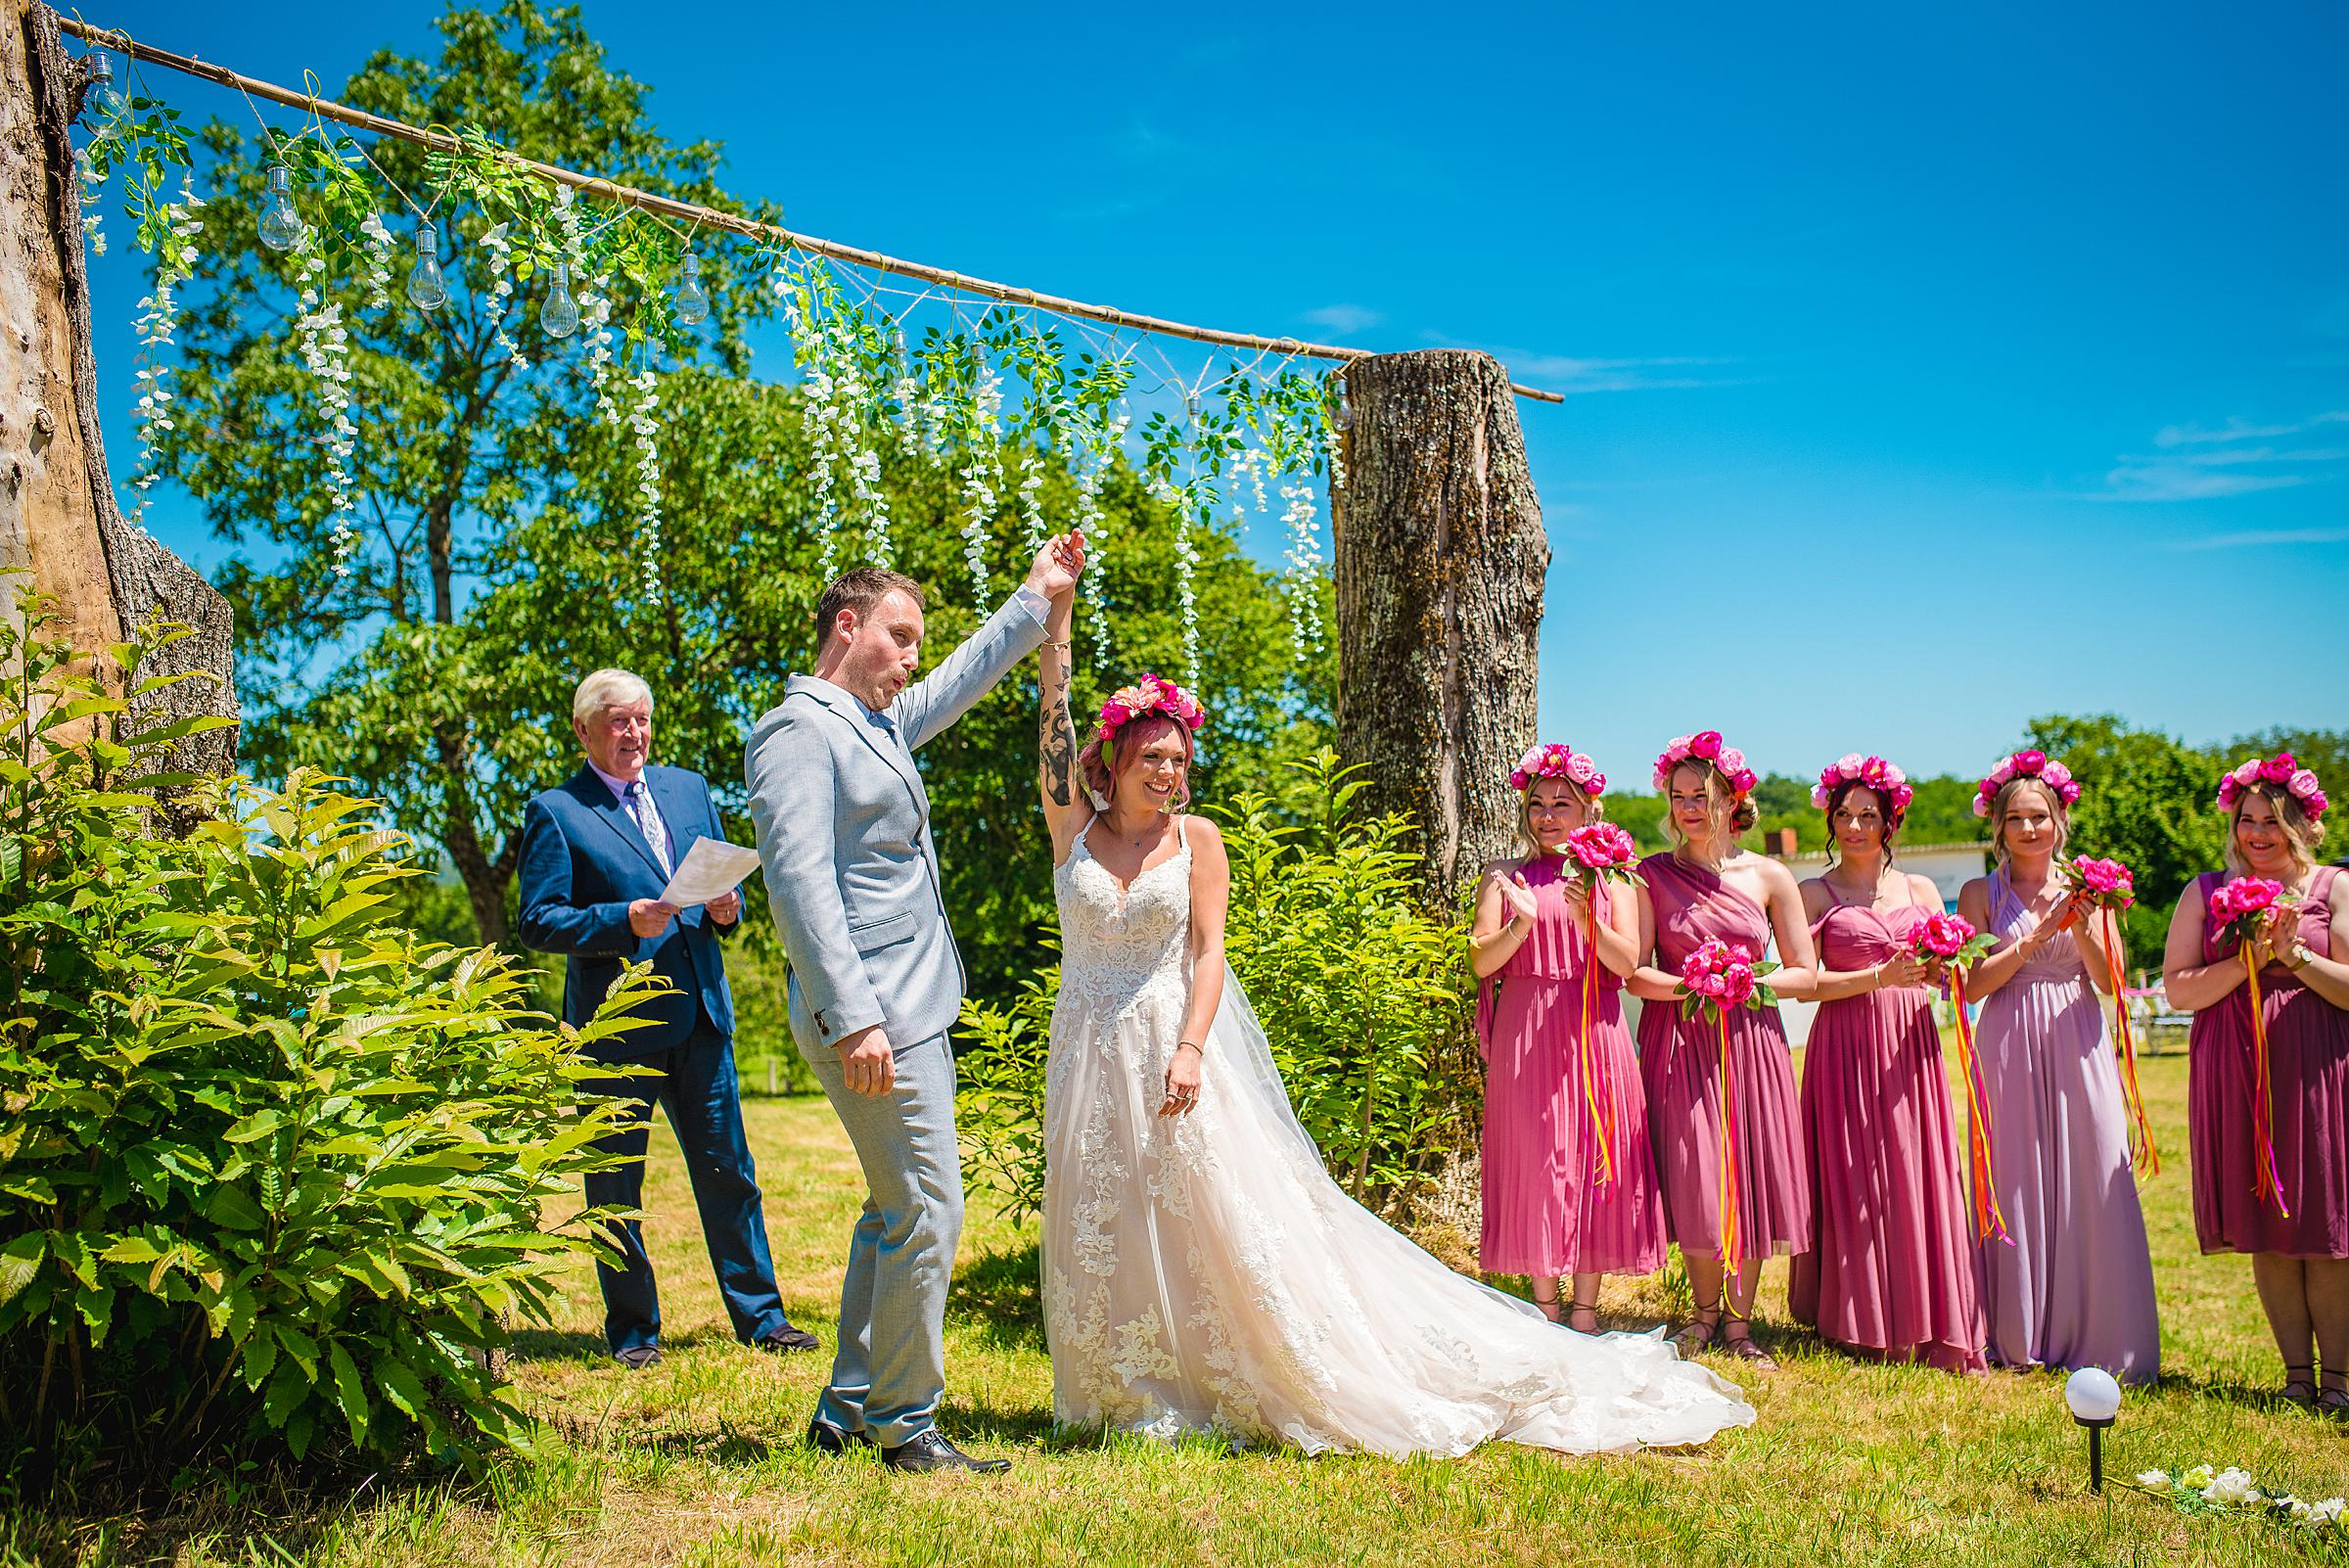 Back Garden Festival Wedding in France Outside Ceremony